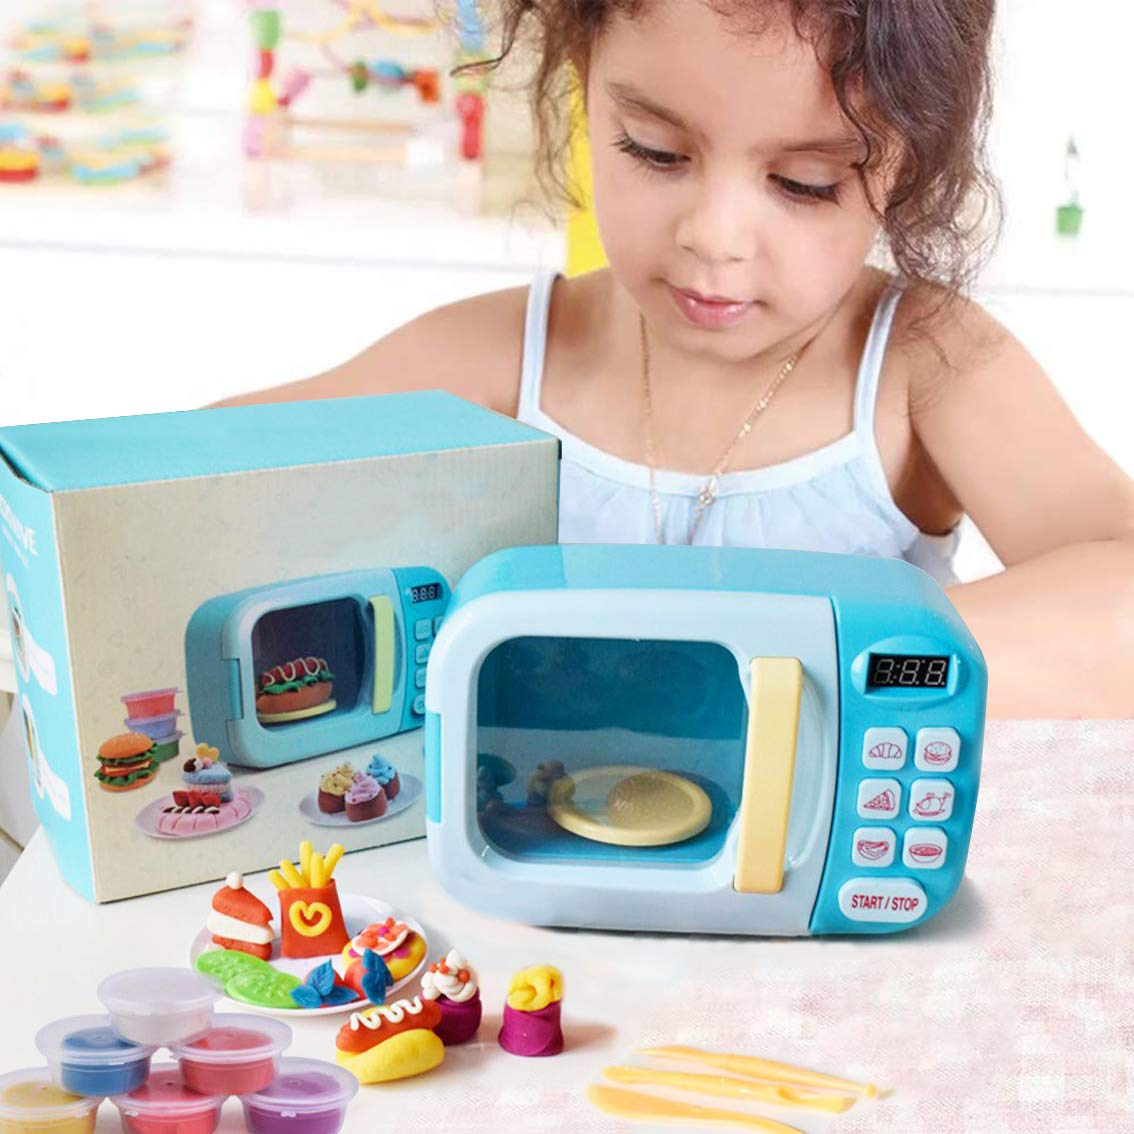 Kids Children Pretend Play Kitchen Appliances Microwave Pretend Play Set And Food Clay Toy Set 1 Microwave Oven 6 Dry Clay Buy Online In Japan At Desertcart Jp Productid 192207974